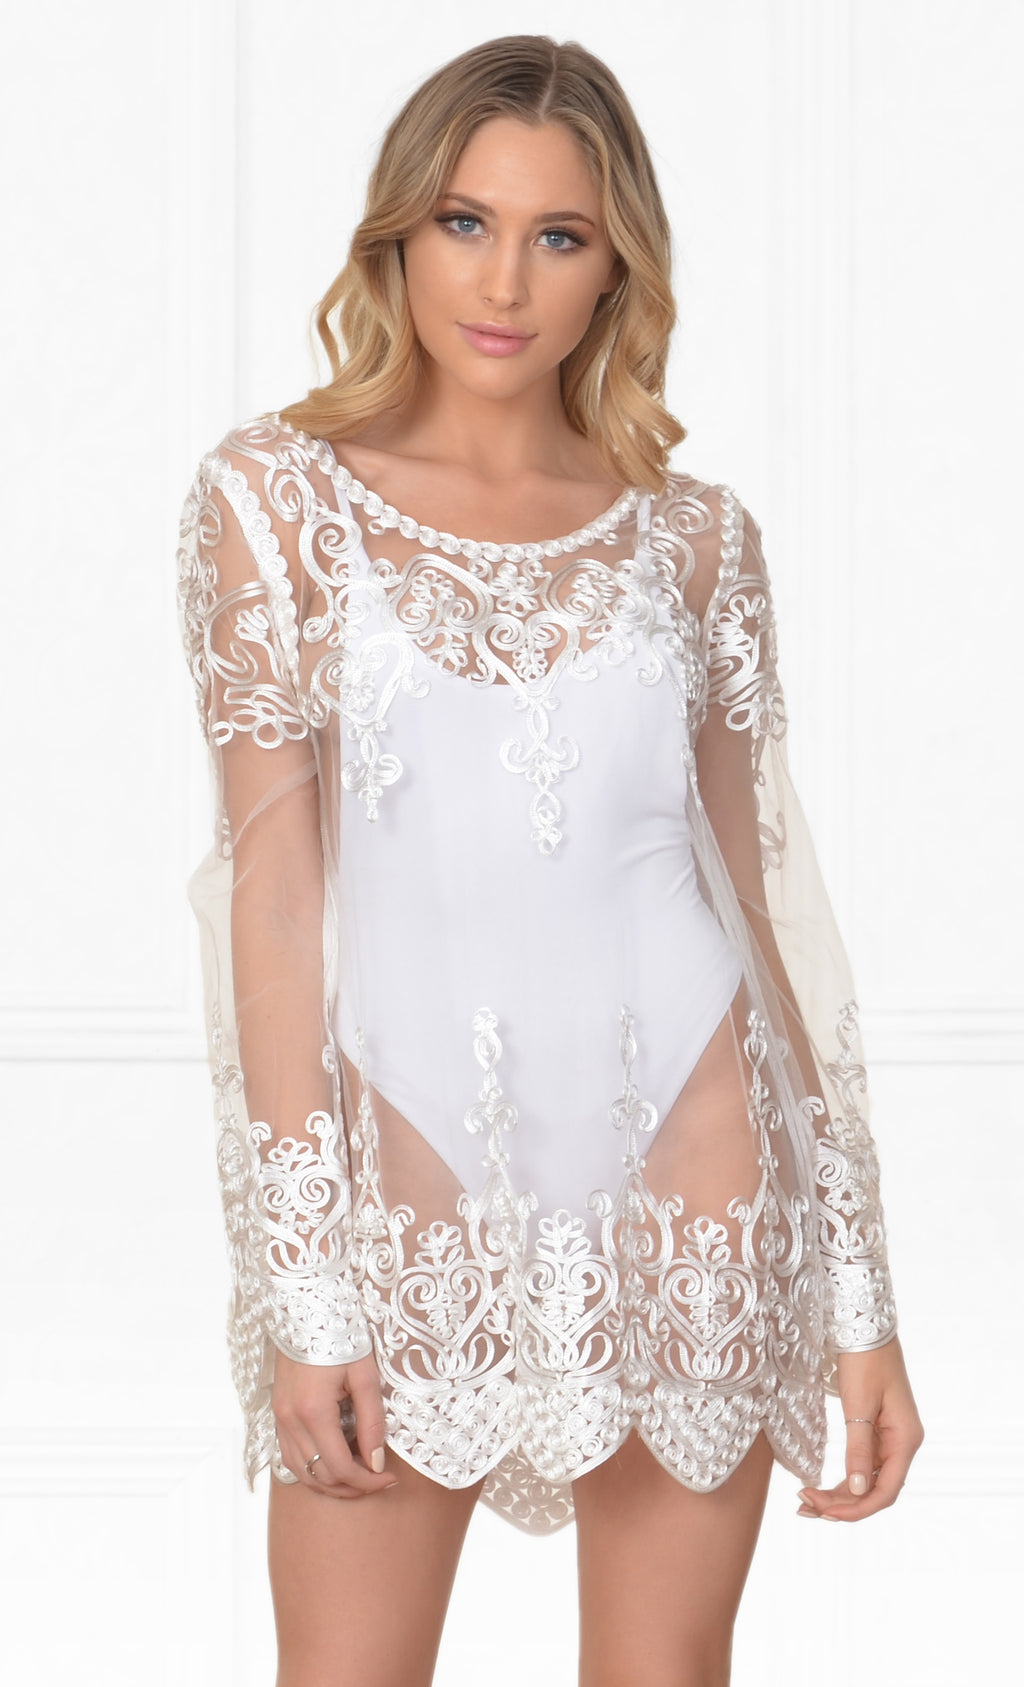 Life's A Beach White Embroidered Sheer Mesh Lace Long Sleeve Scallop Hem Blouse Beach Cover Up Top